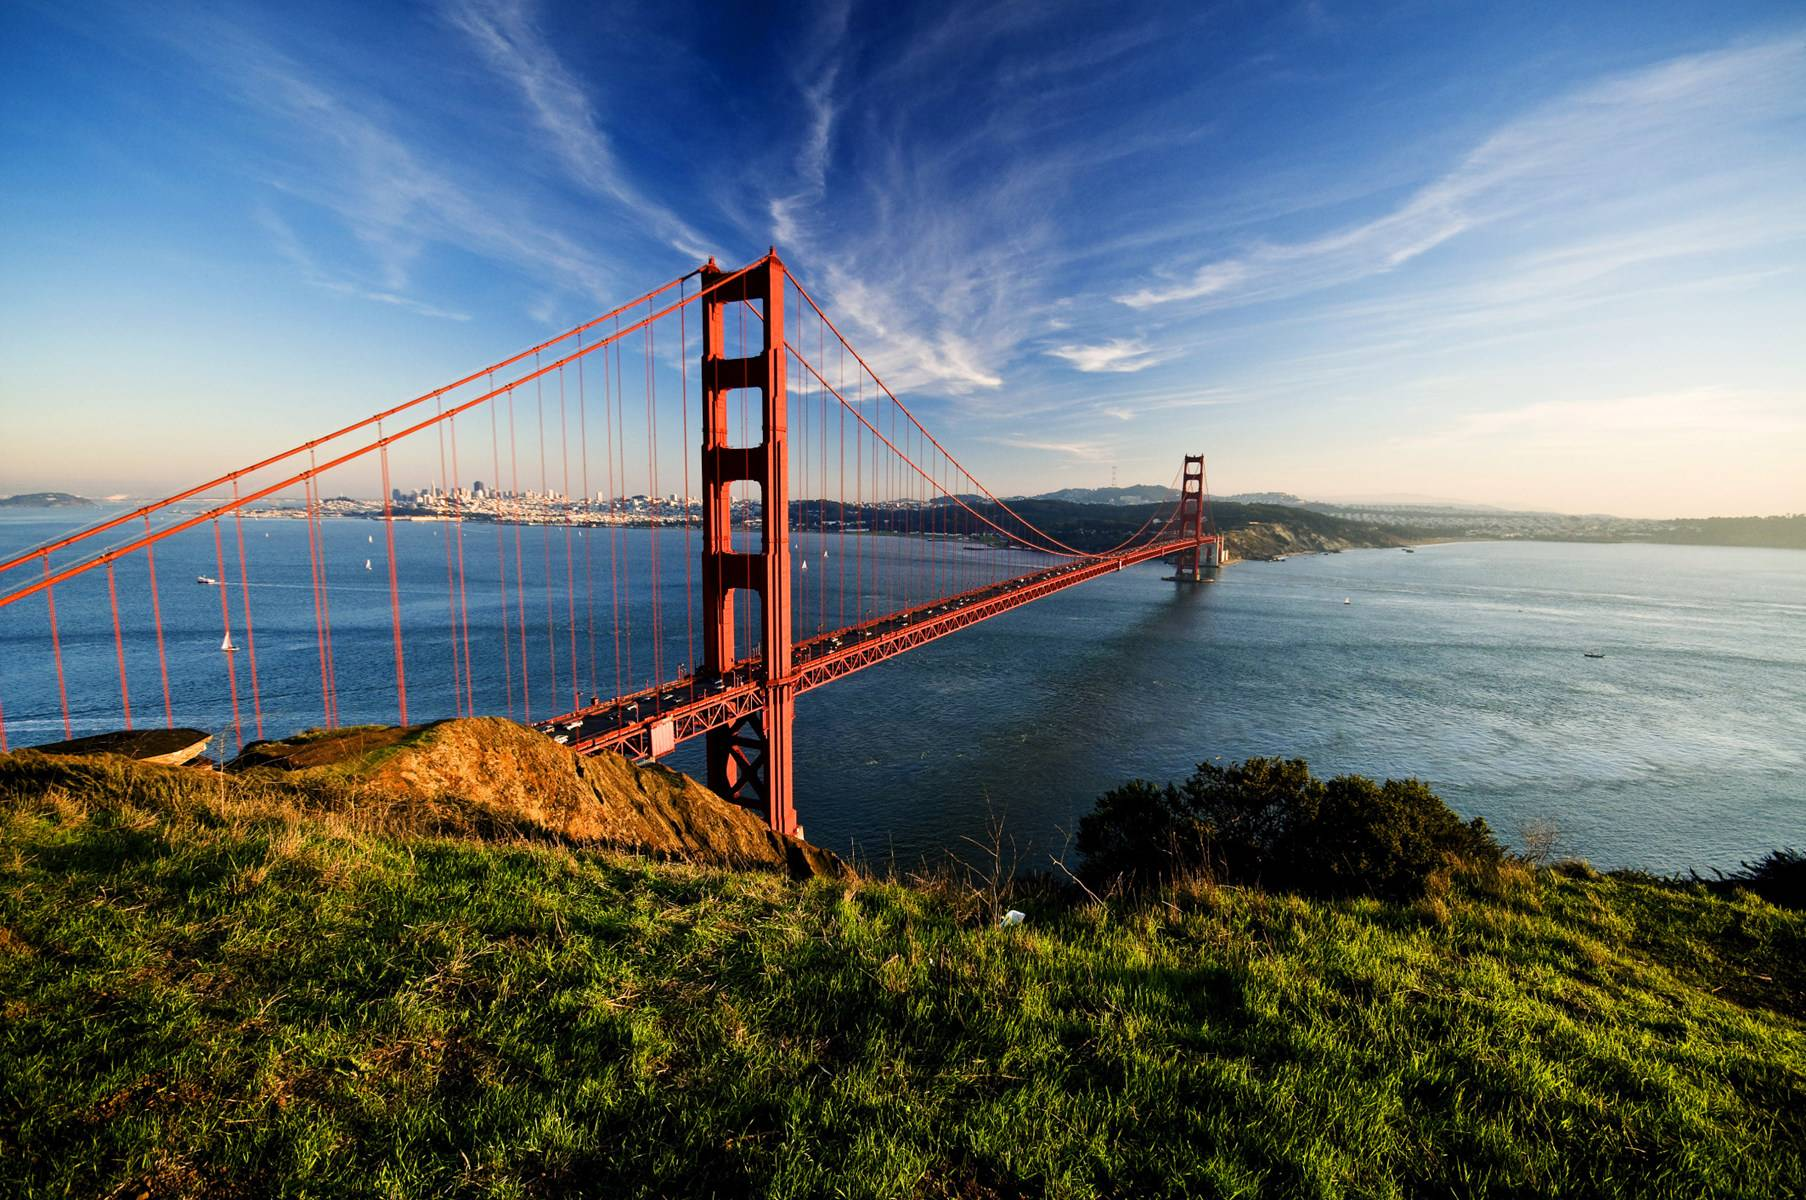 5-Day Highlights of California Tour From Los Angeles W/ California Theme Parks